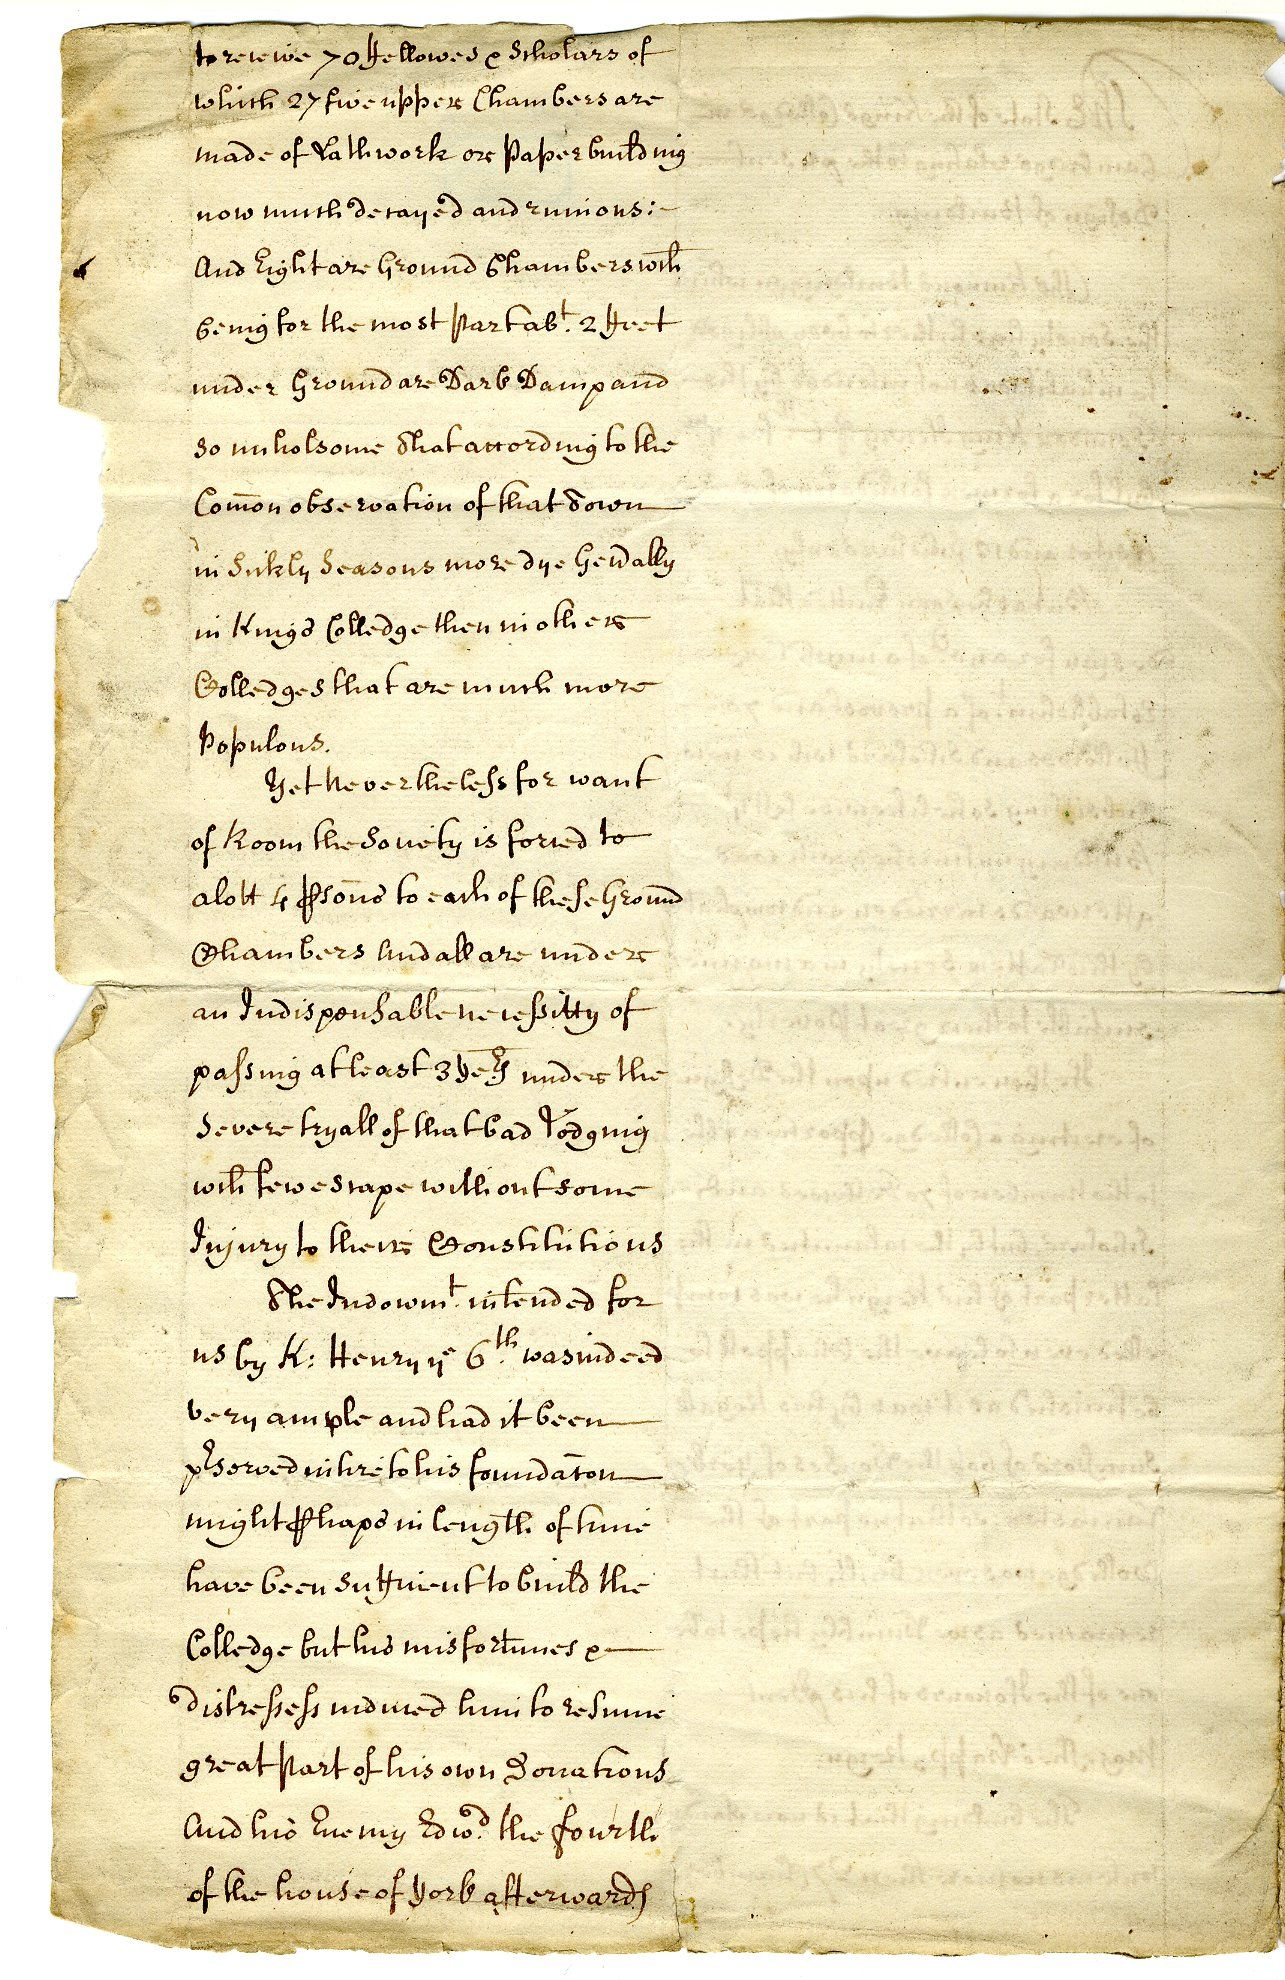 Second page of 'The State of the King's Colledge [sic] in Cambridge relating to the present design of building'. A petition to the King for his patronage of the new building scheme, 1600-1700. [GIB/1/2, former ref Coll 1/56]